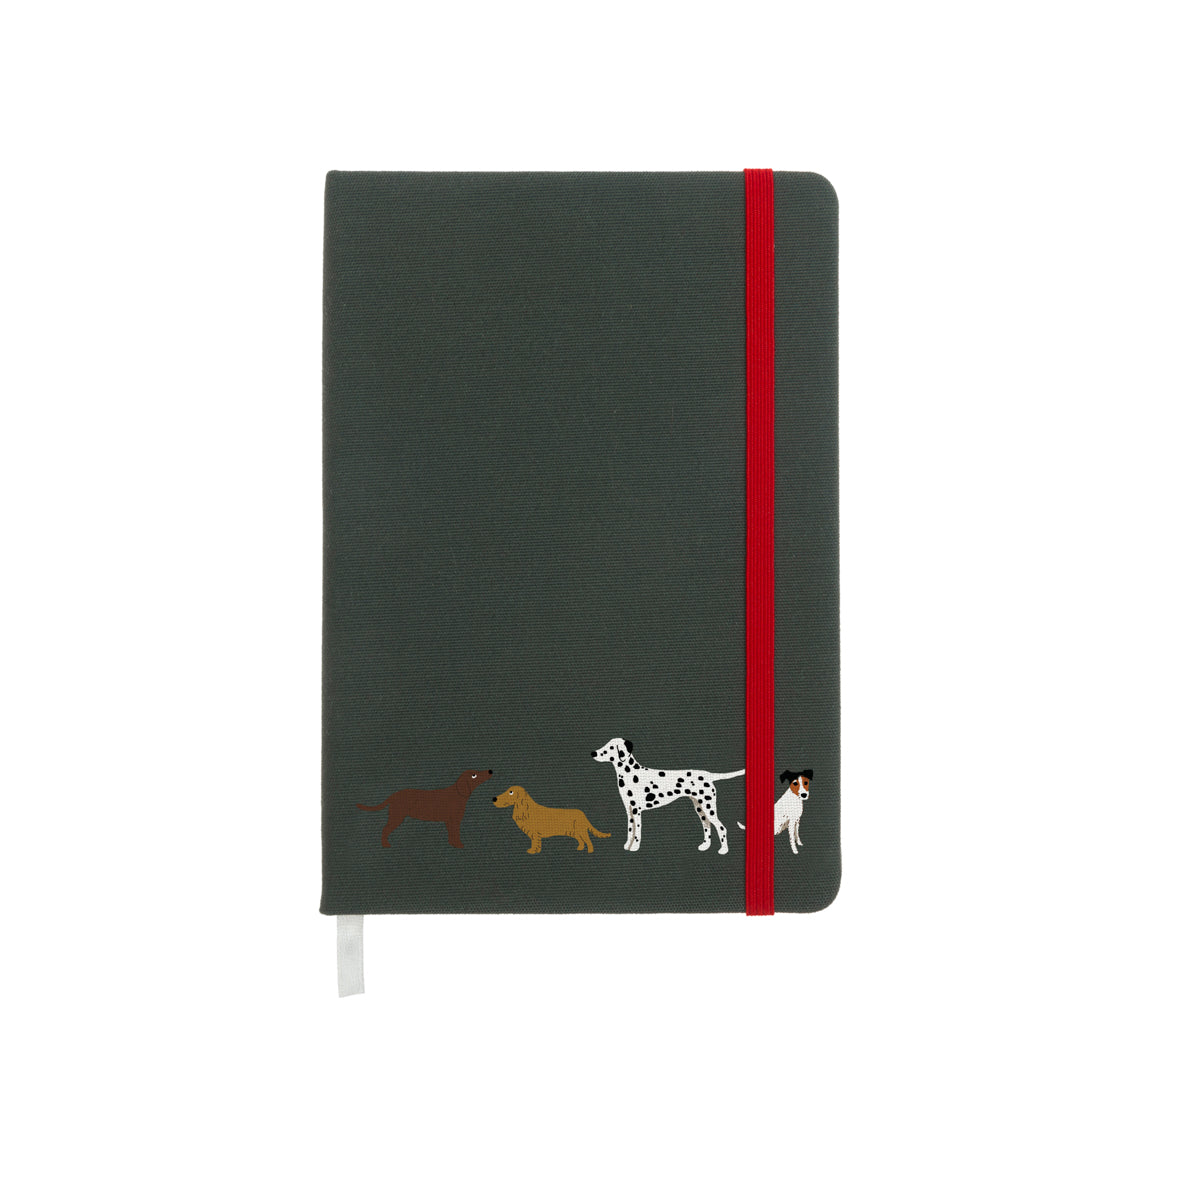 B6 notebook in Sophie Allport's fetch design